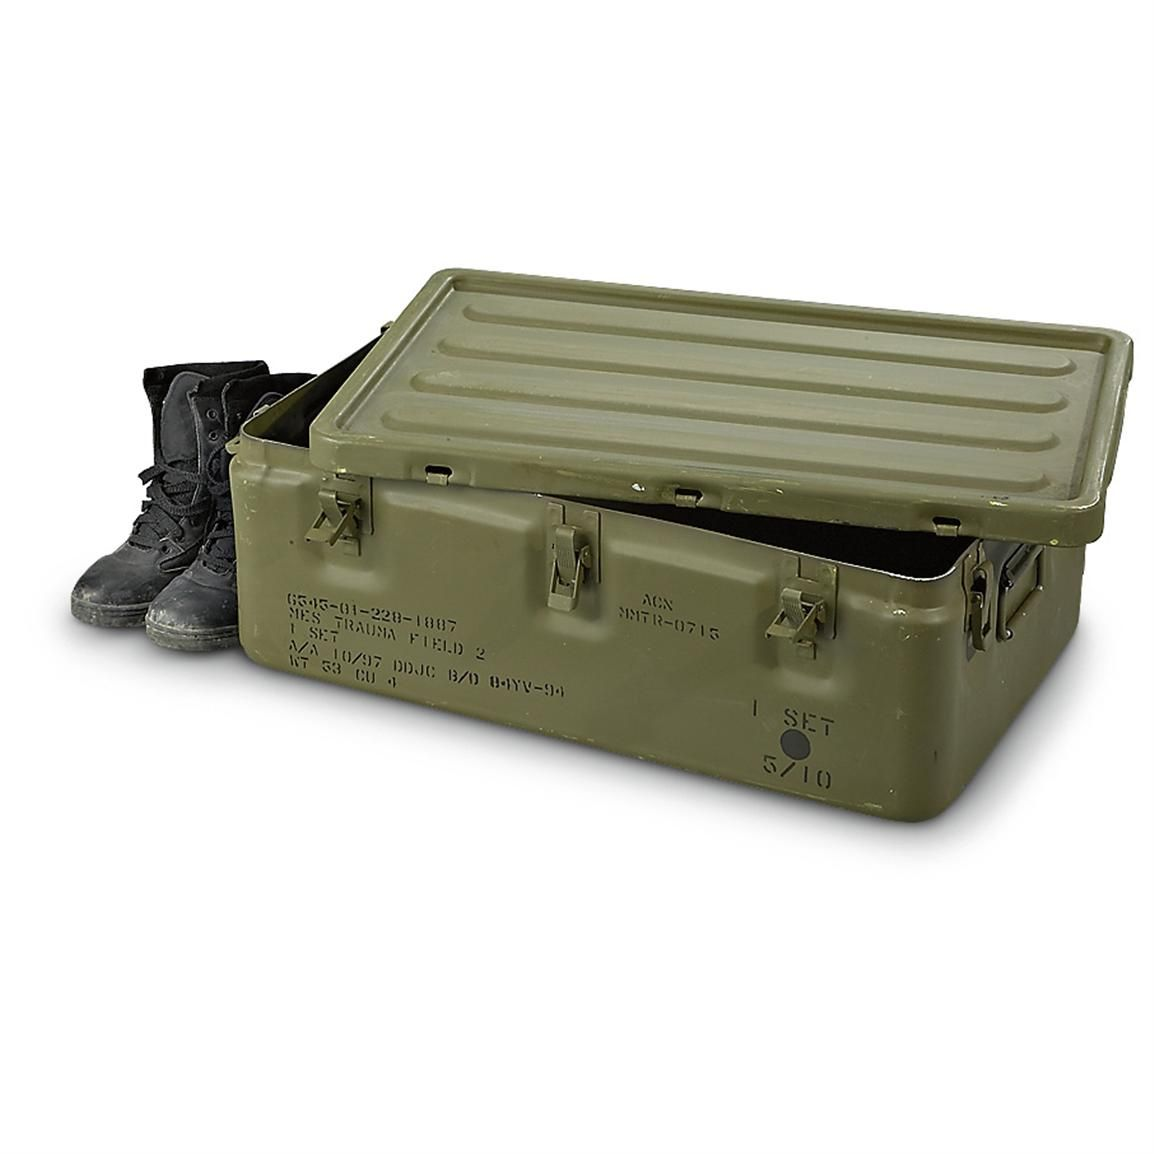 Military Surplus Medical Chest Used Available At A Great Price In Our Storage Containers Collection